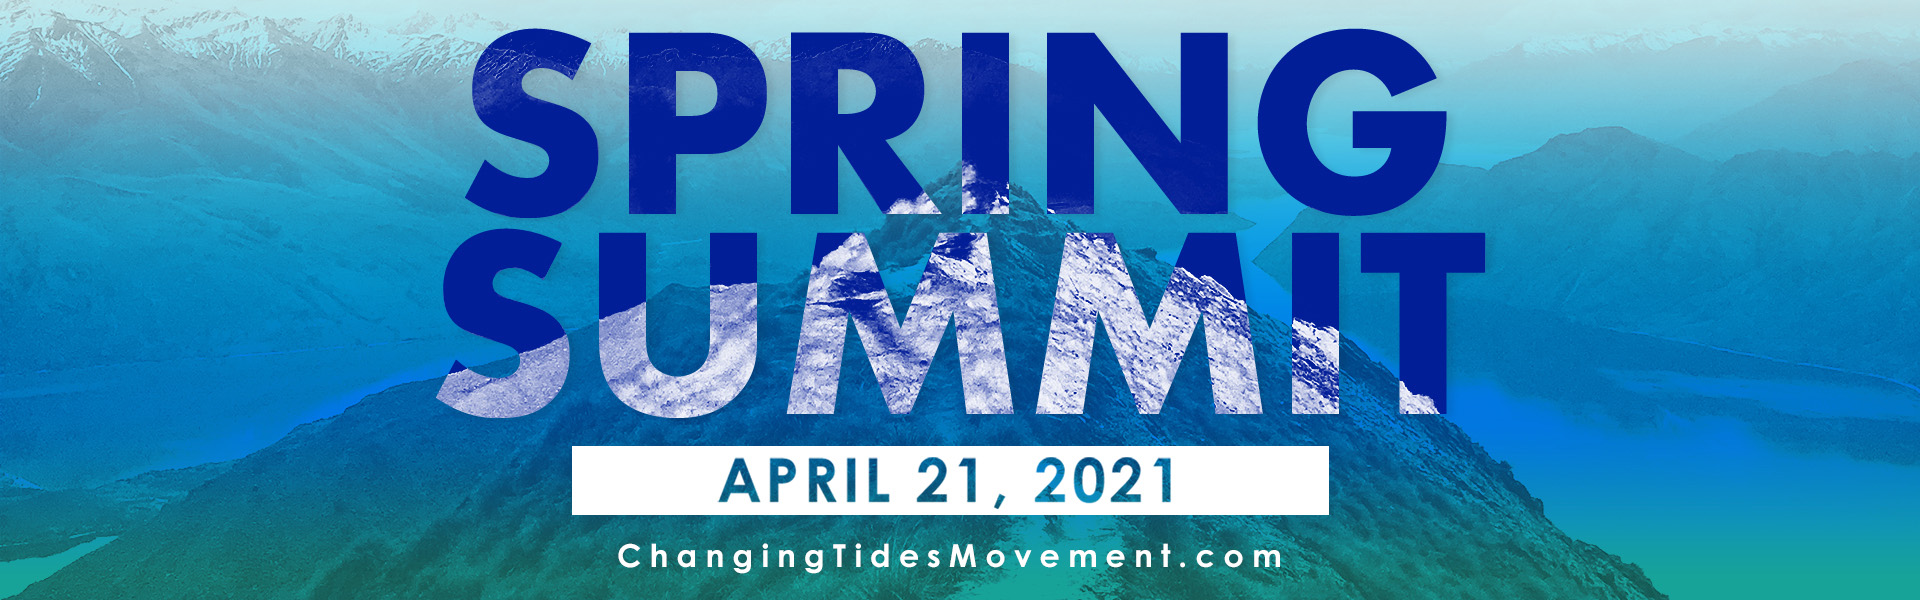 Changing Tides Spring Summit 4/21/21